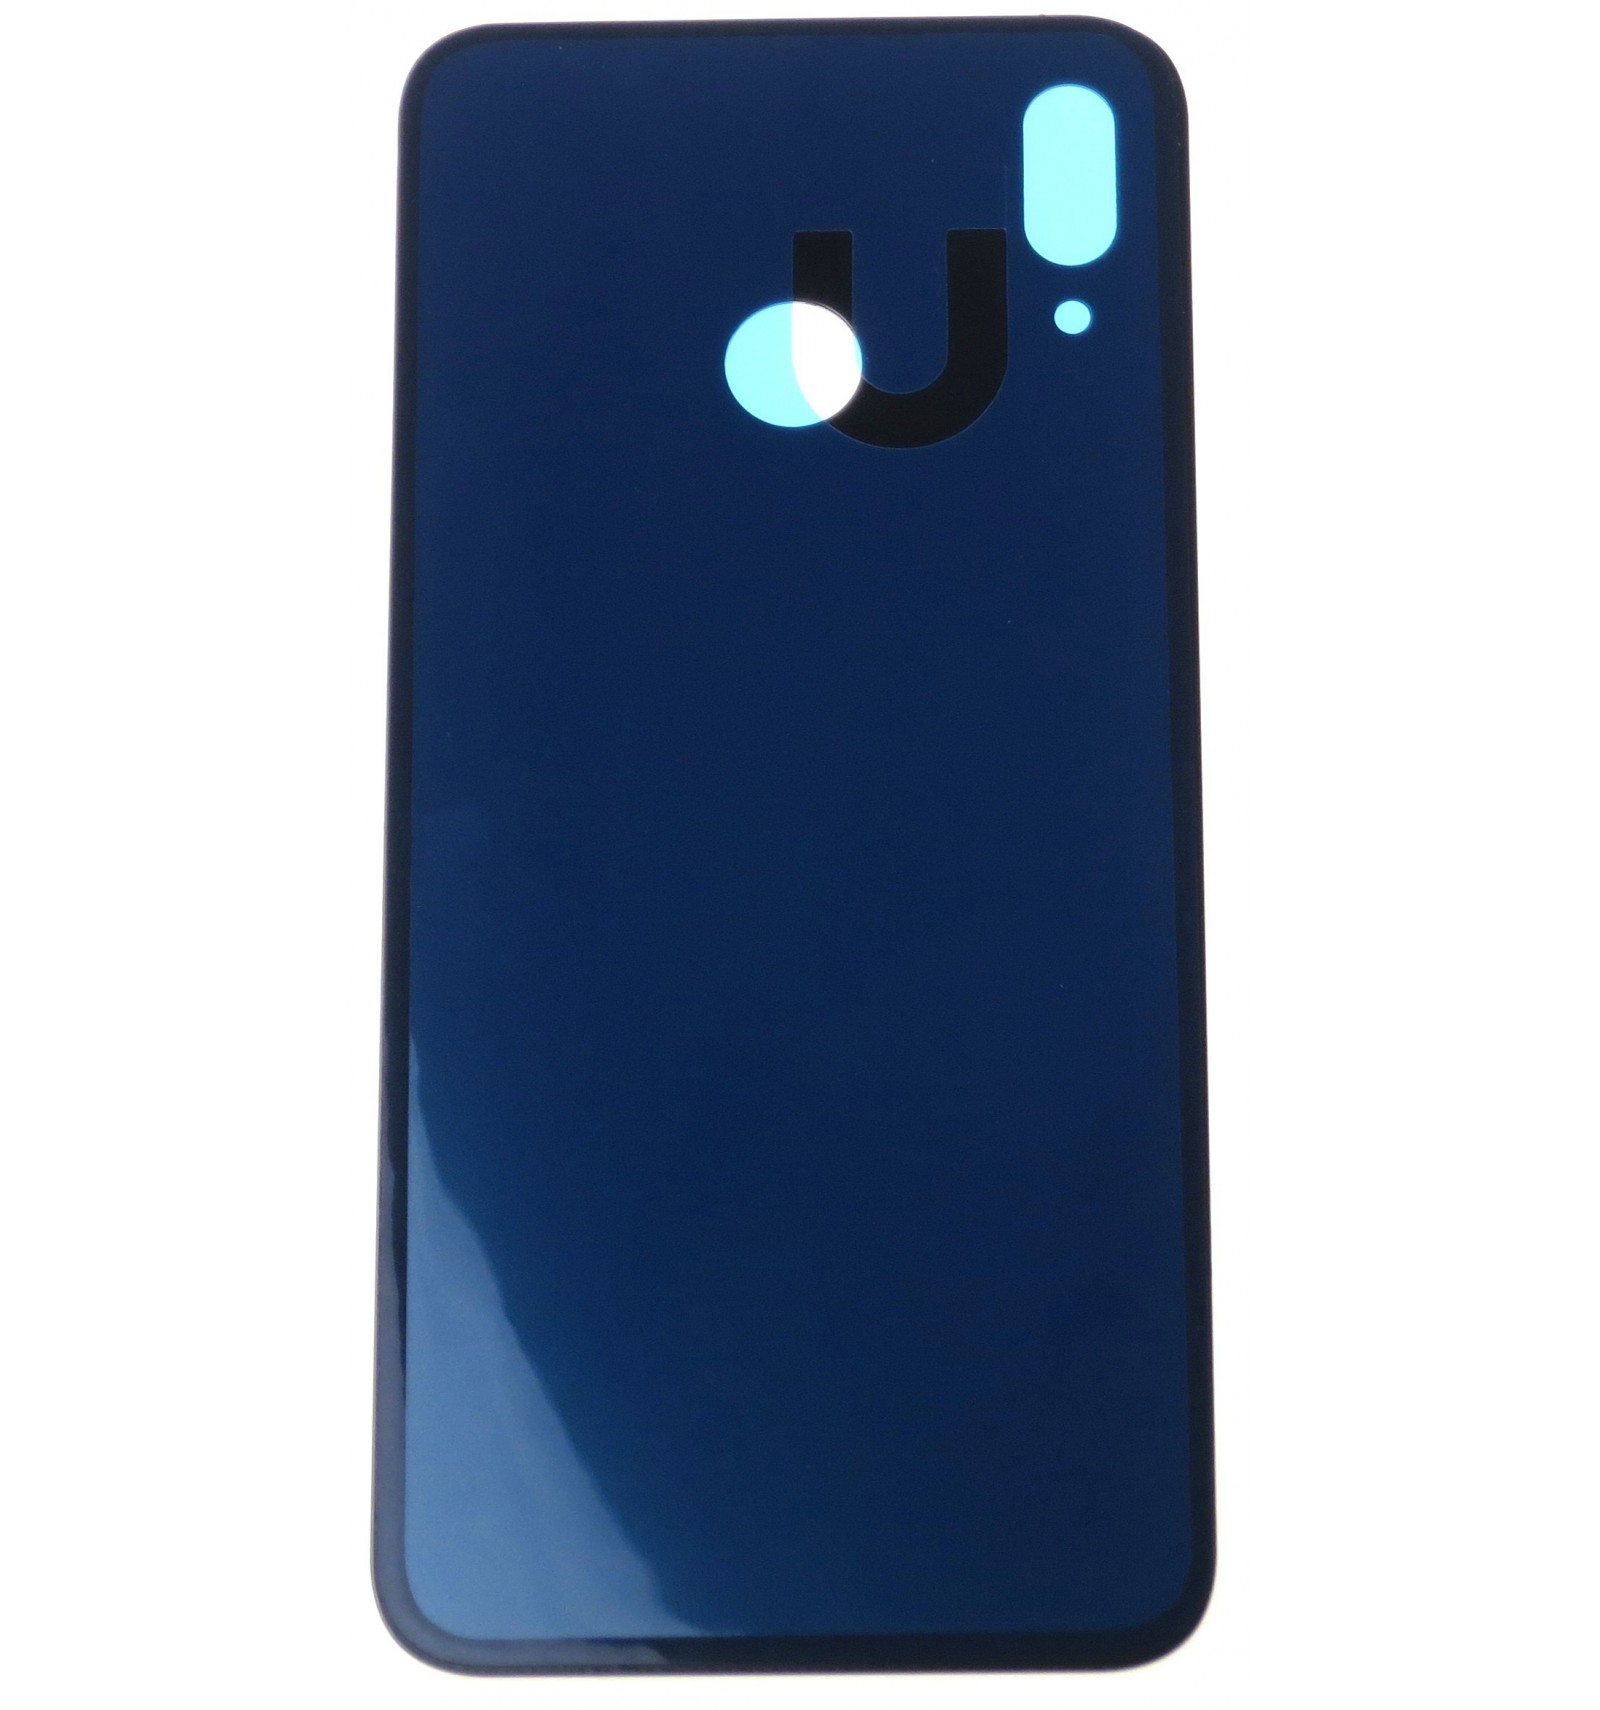 Battery Cover Gold Oem For Huawei P20 Lite Samsung Galaxy Fame S6810 Blue Free Microsd 8gb